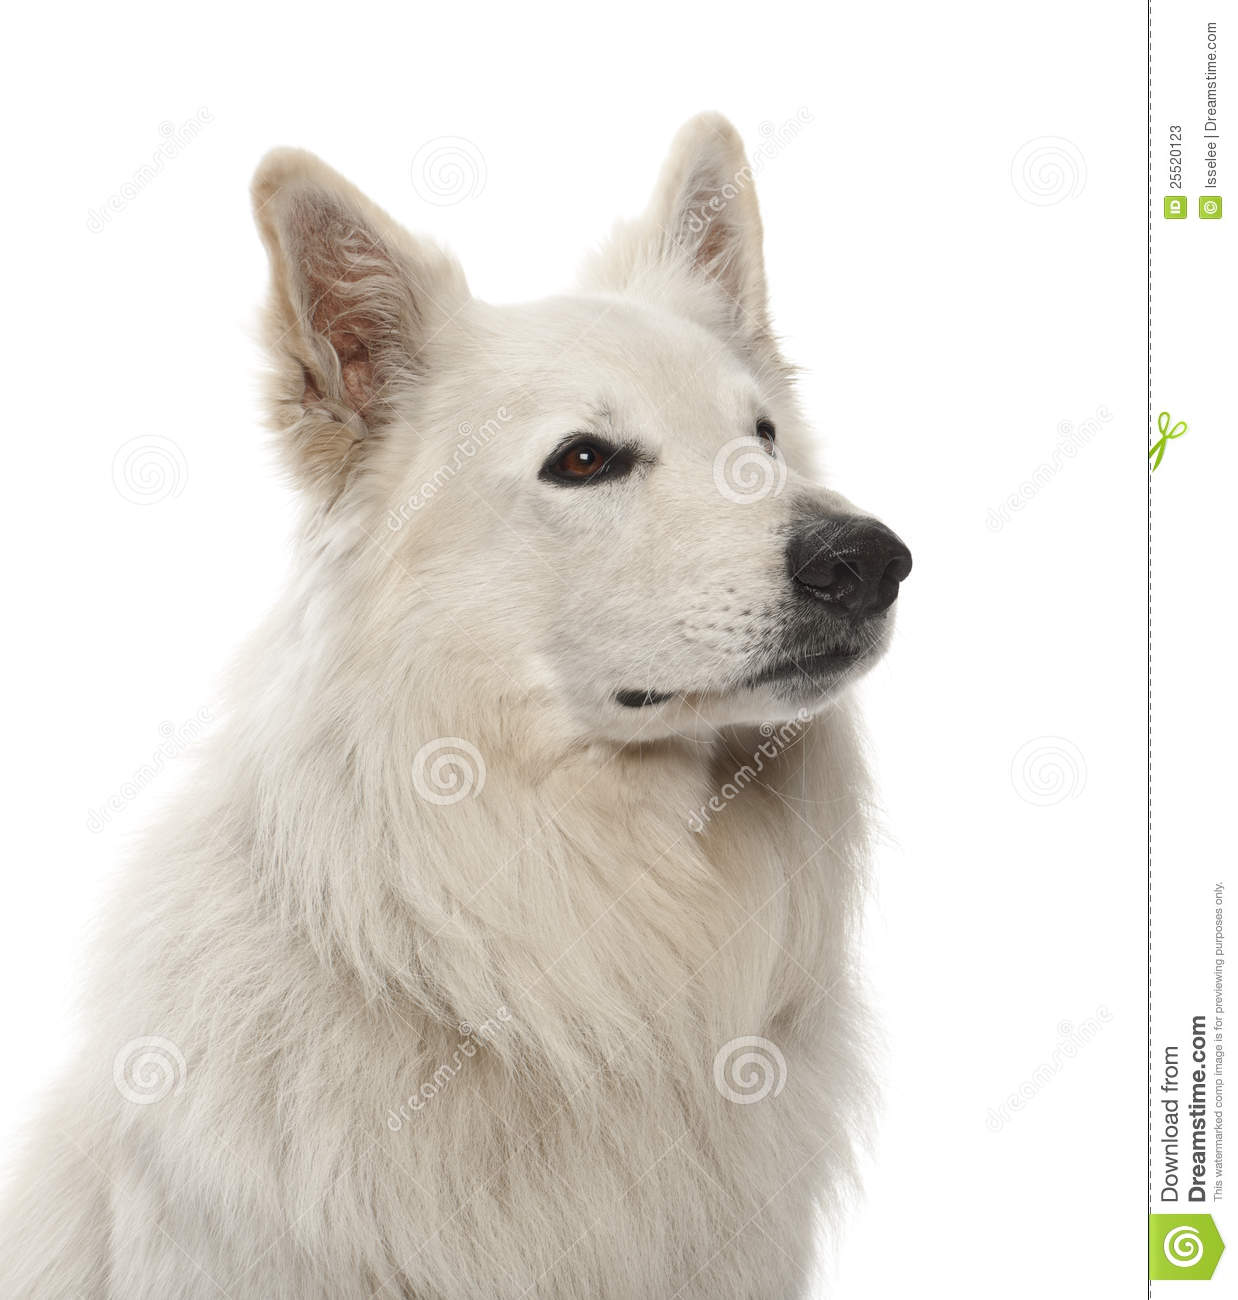 Berger Blanc Suisse clipart #13, Download drawings